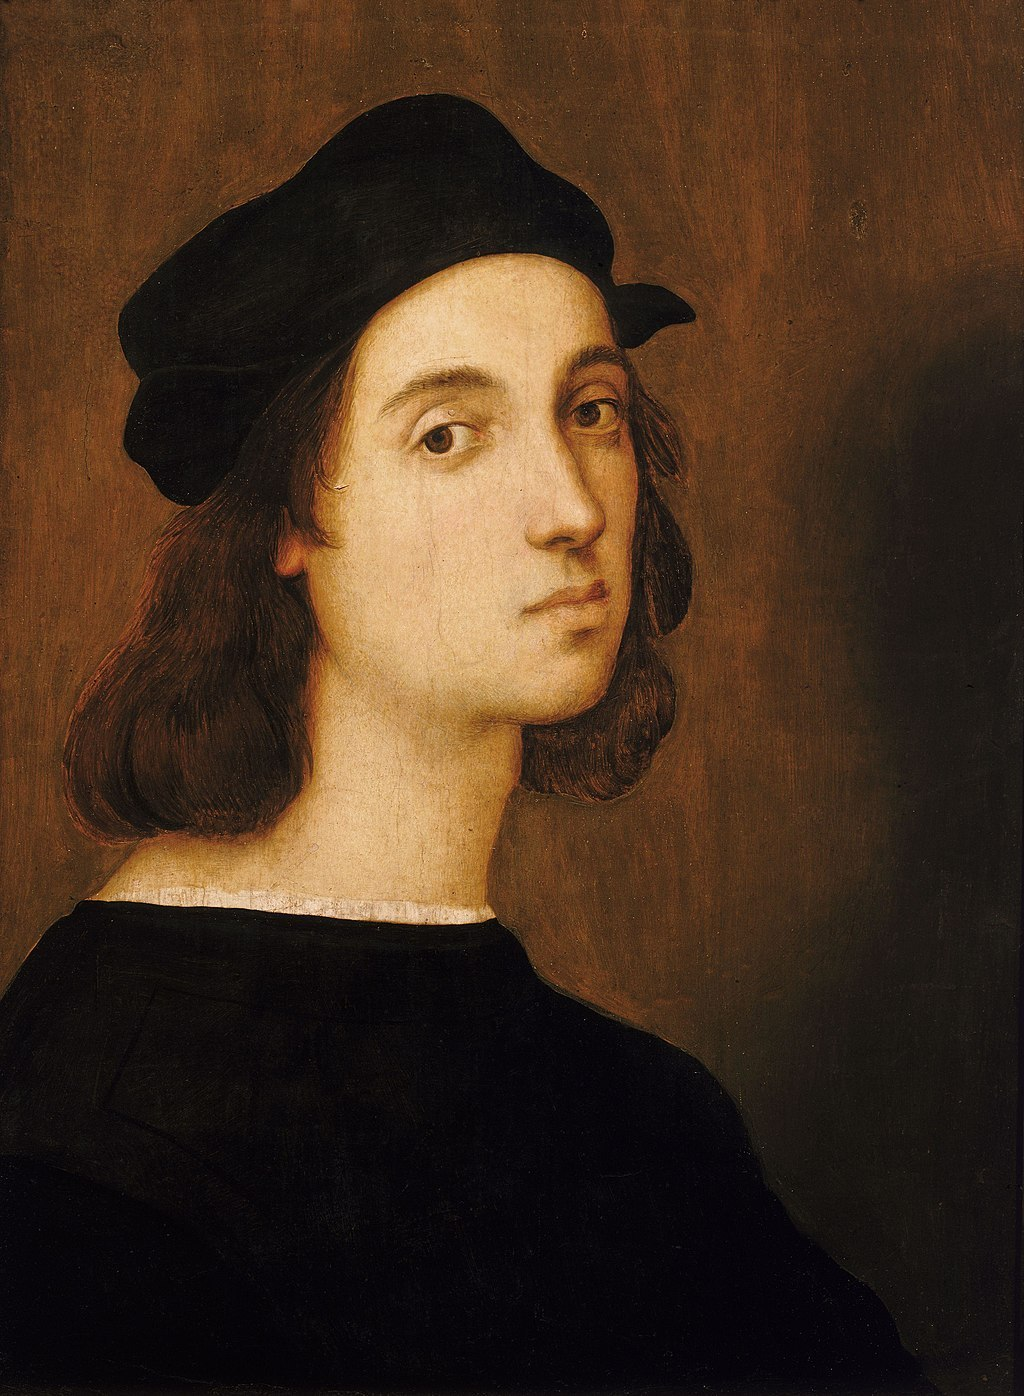 Raphael's Face Reconstructed in 3D by University of Rome Researchers – ARTnews.com